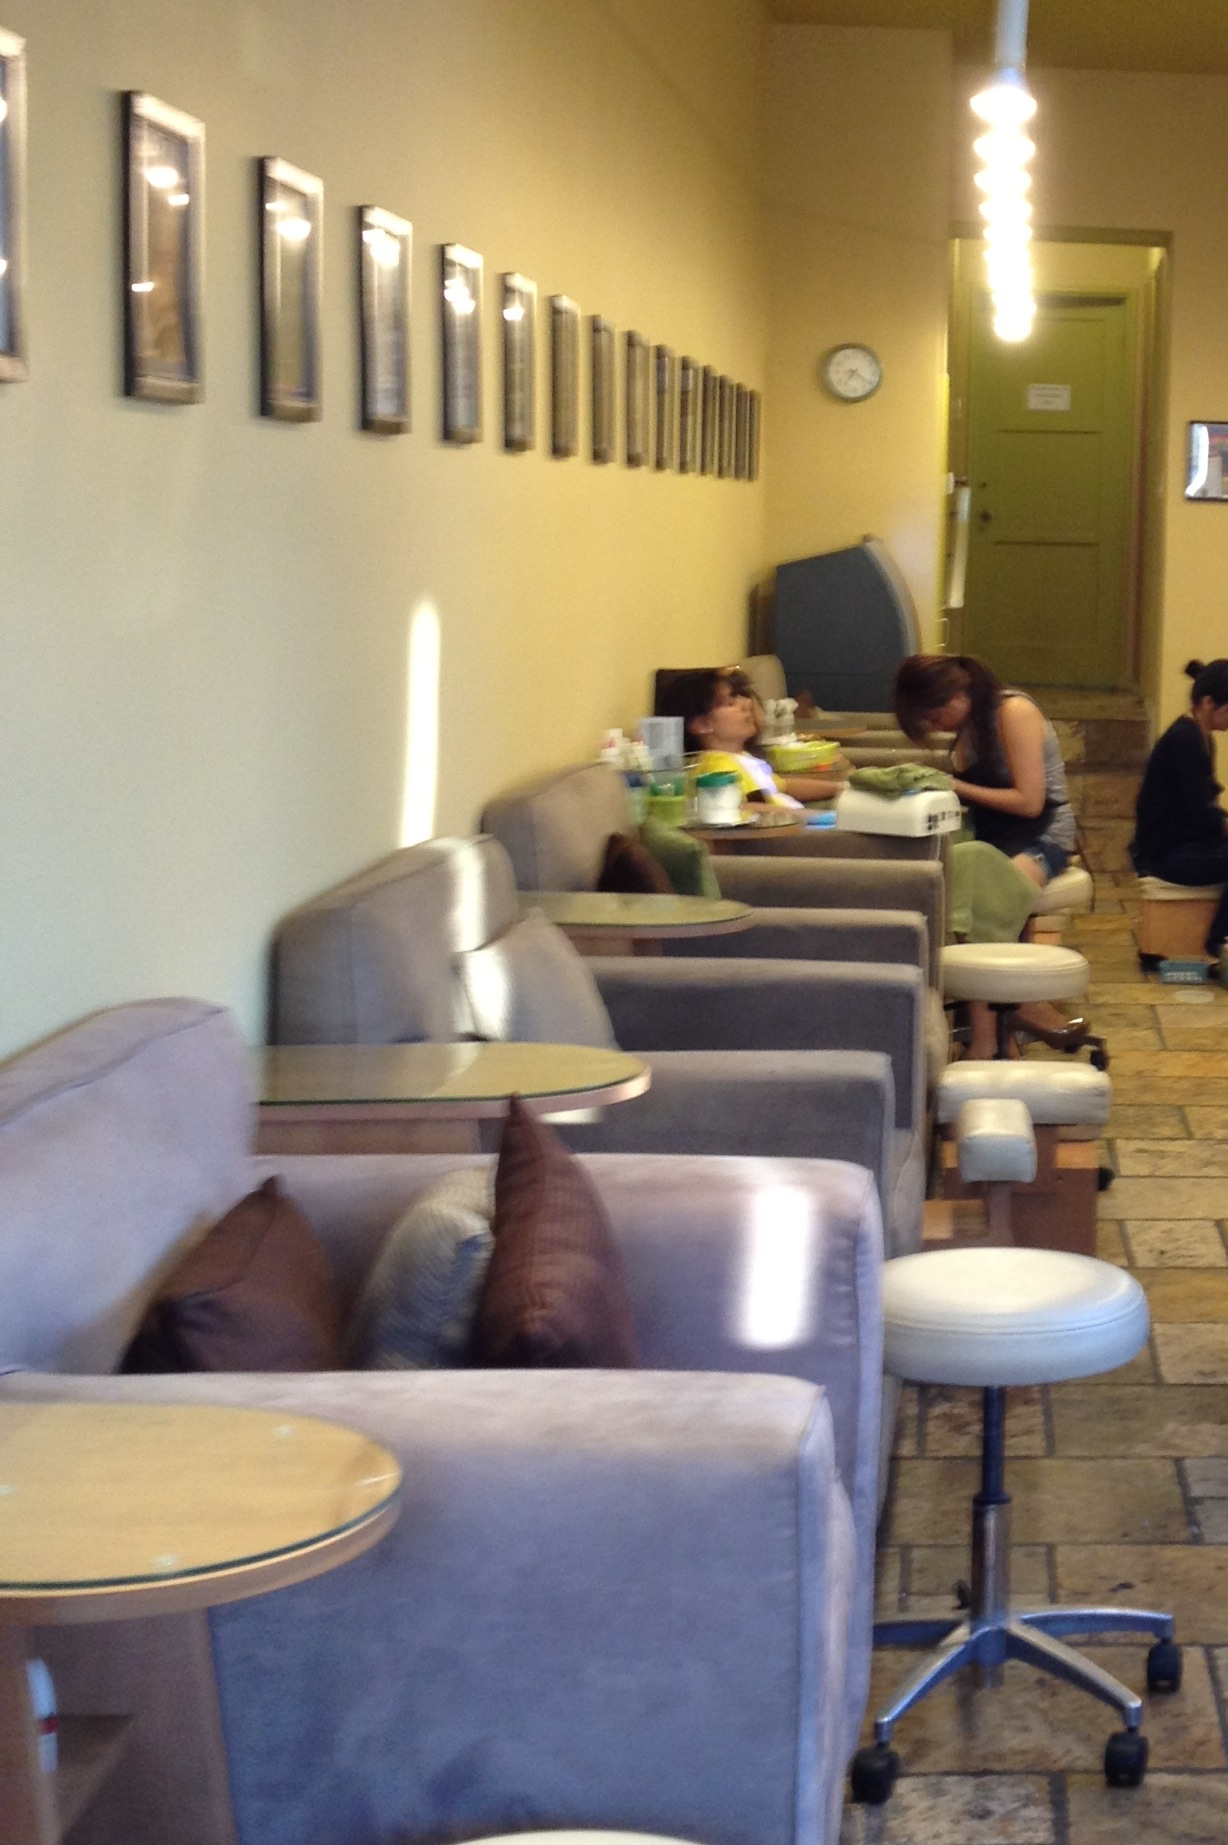 Bellacures larchmont village salon review polishment for Accolades salon reviews